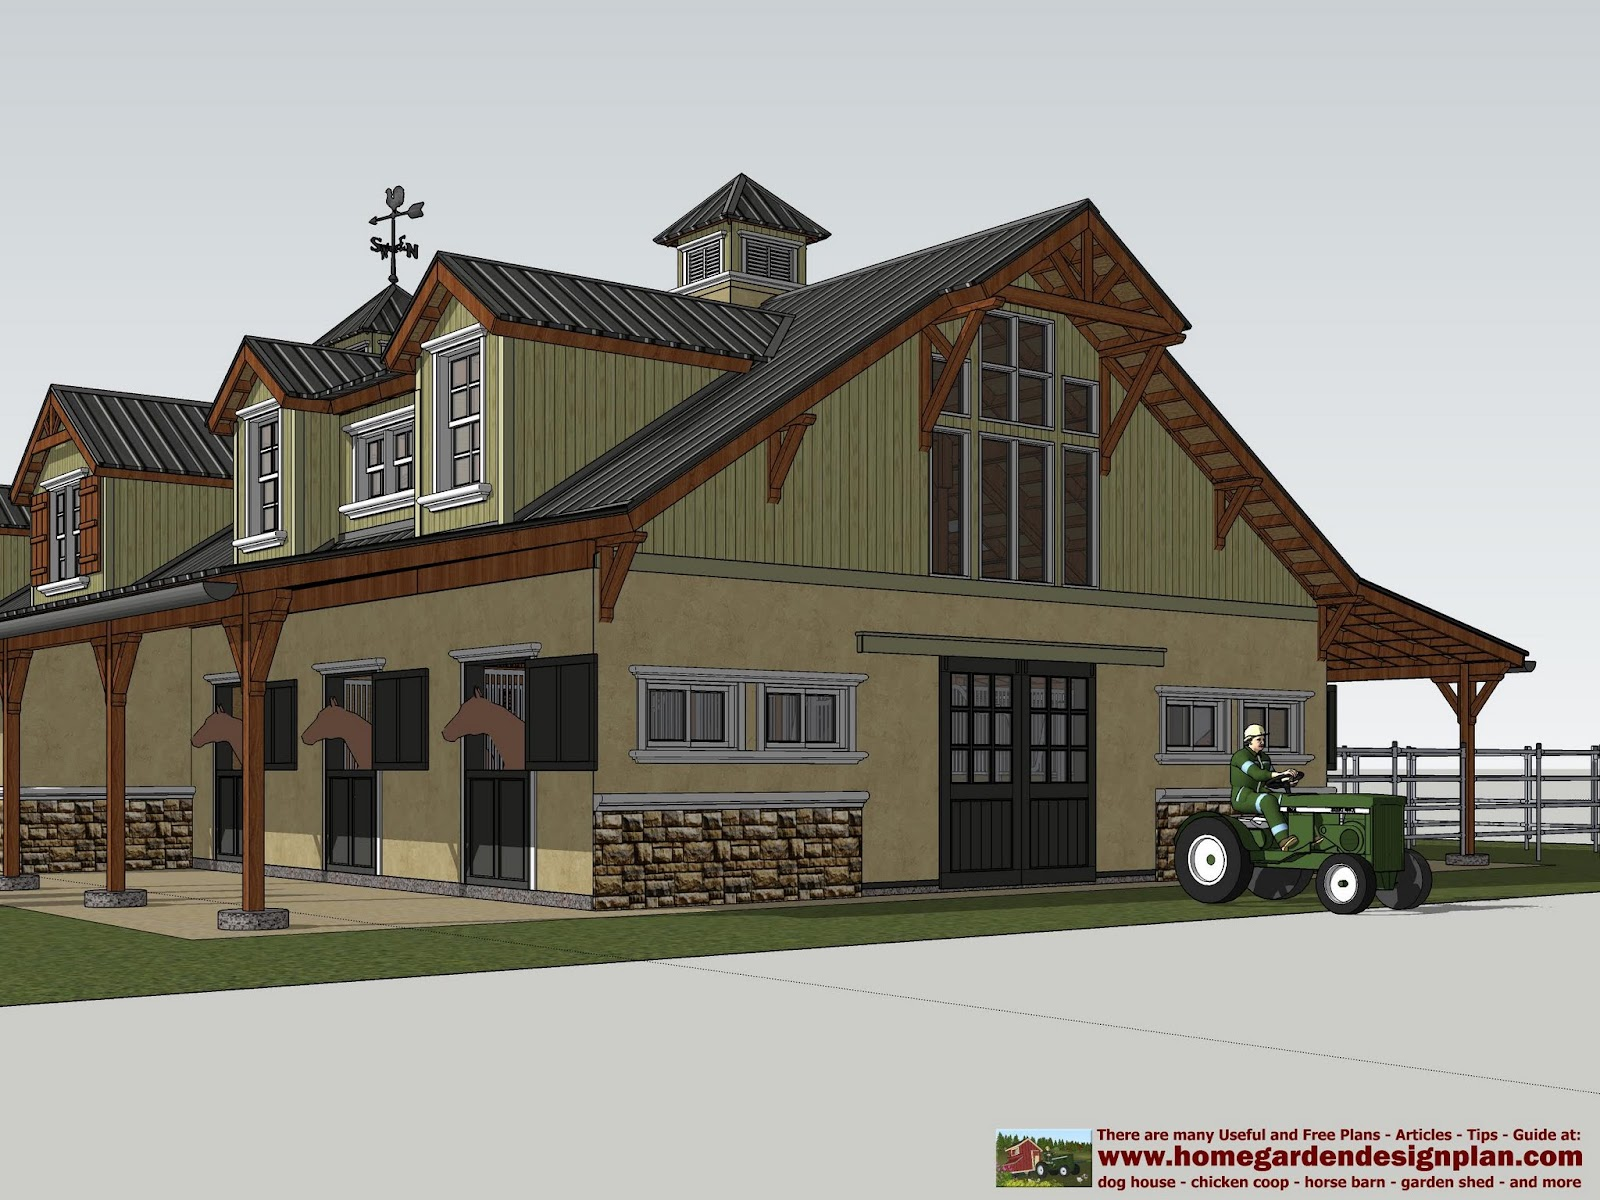 Home garden plans hb100 horse barn plans horse barn for Barn plans